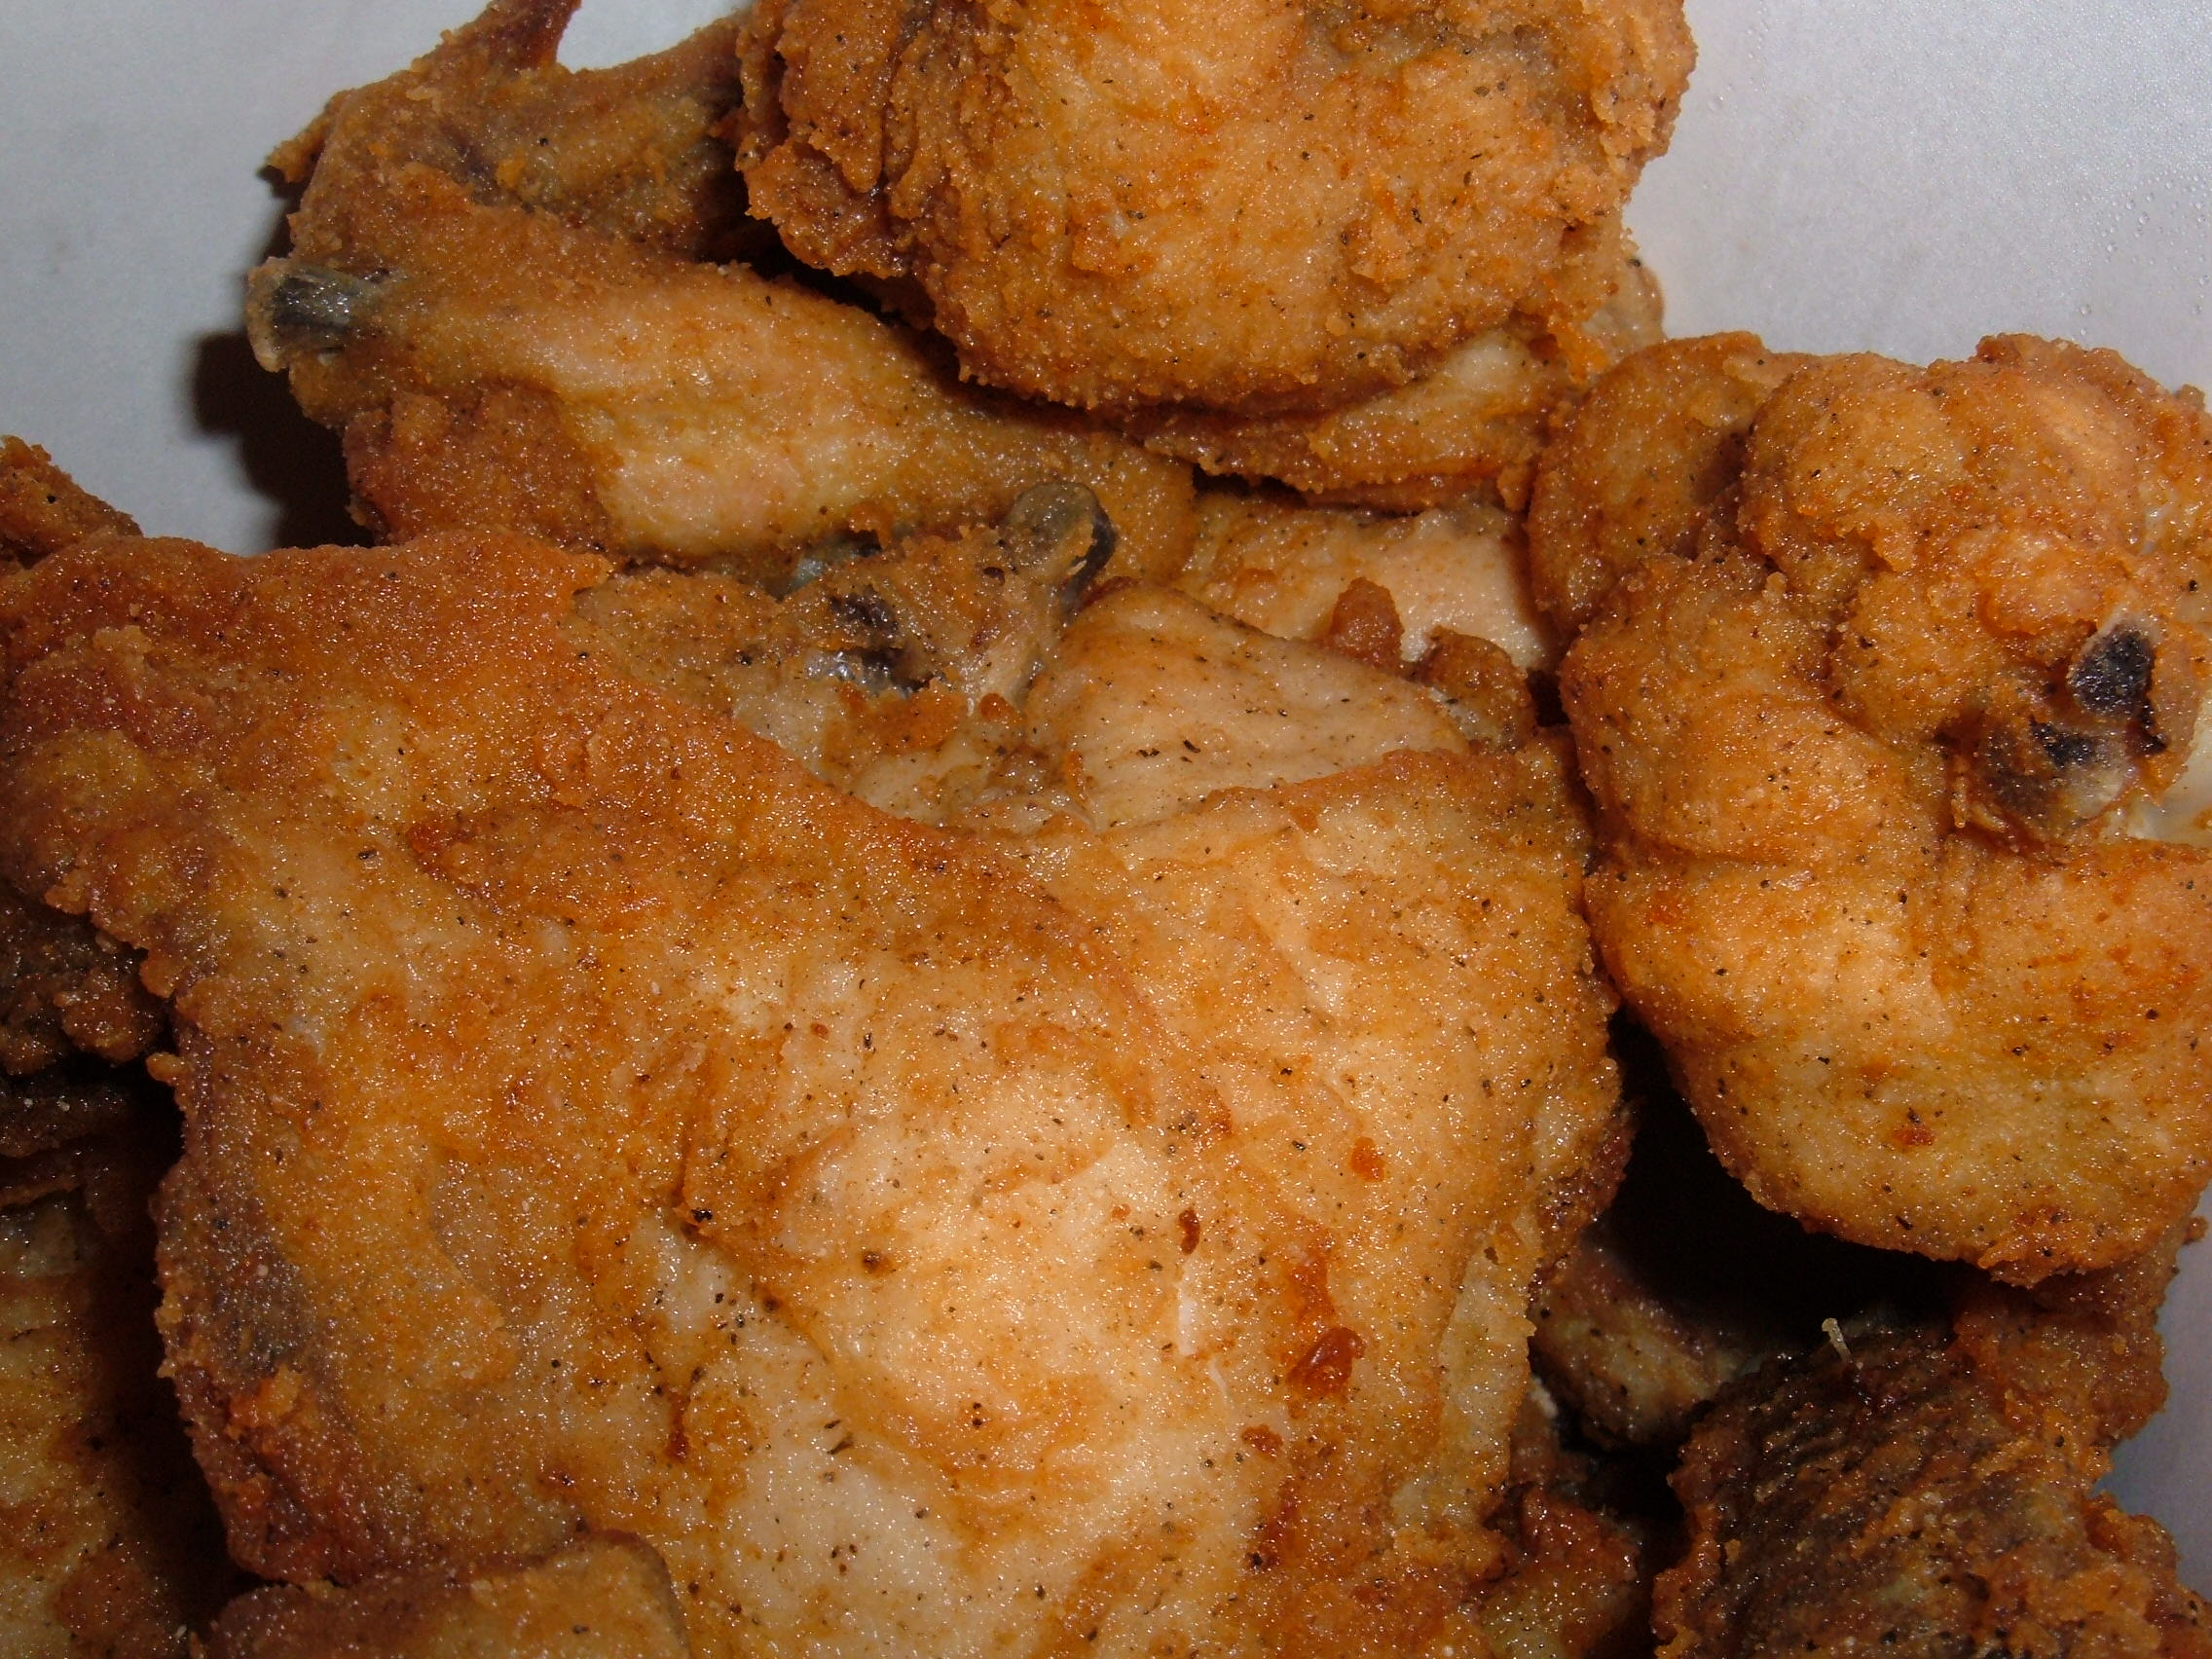 File:KFC Original Recipe chicken in bucket.jpg  Wikipedia